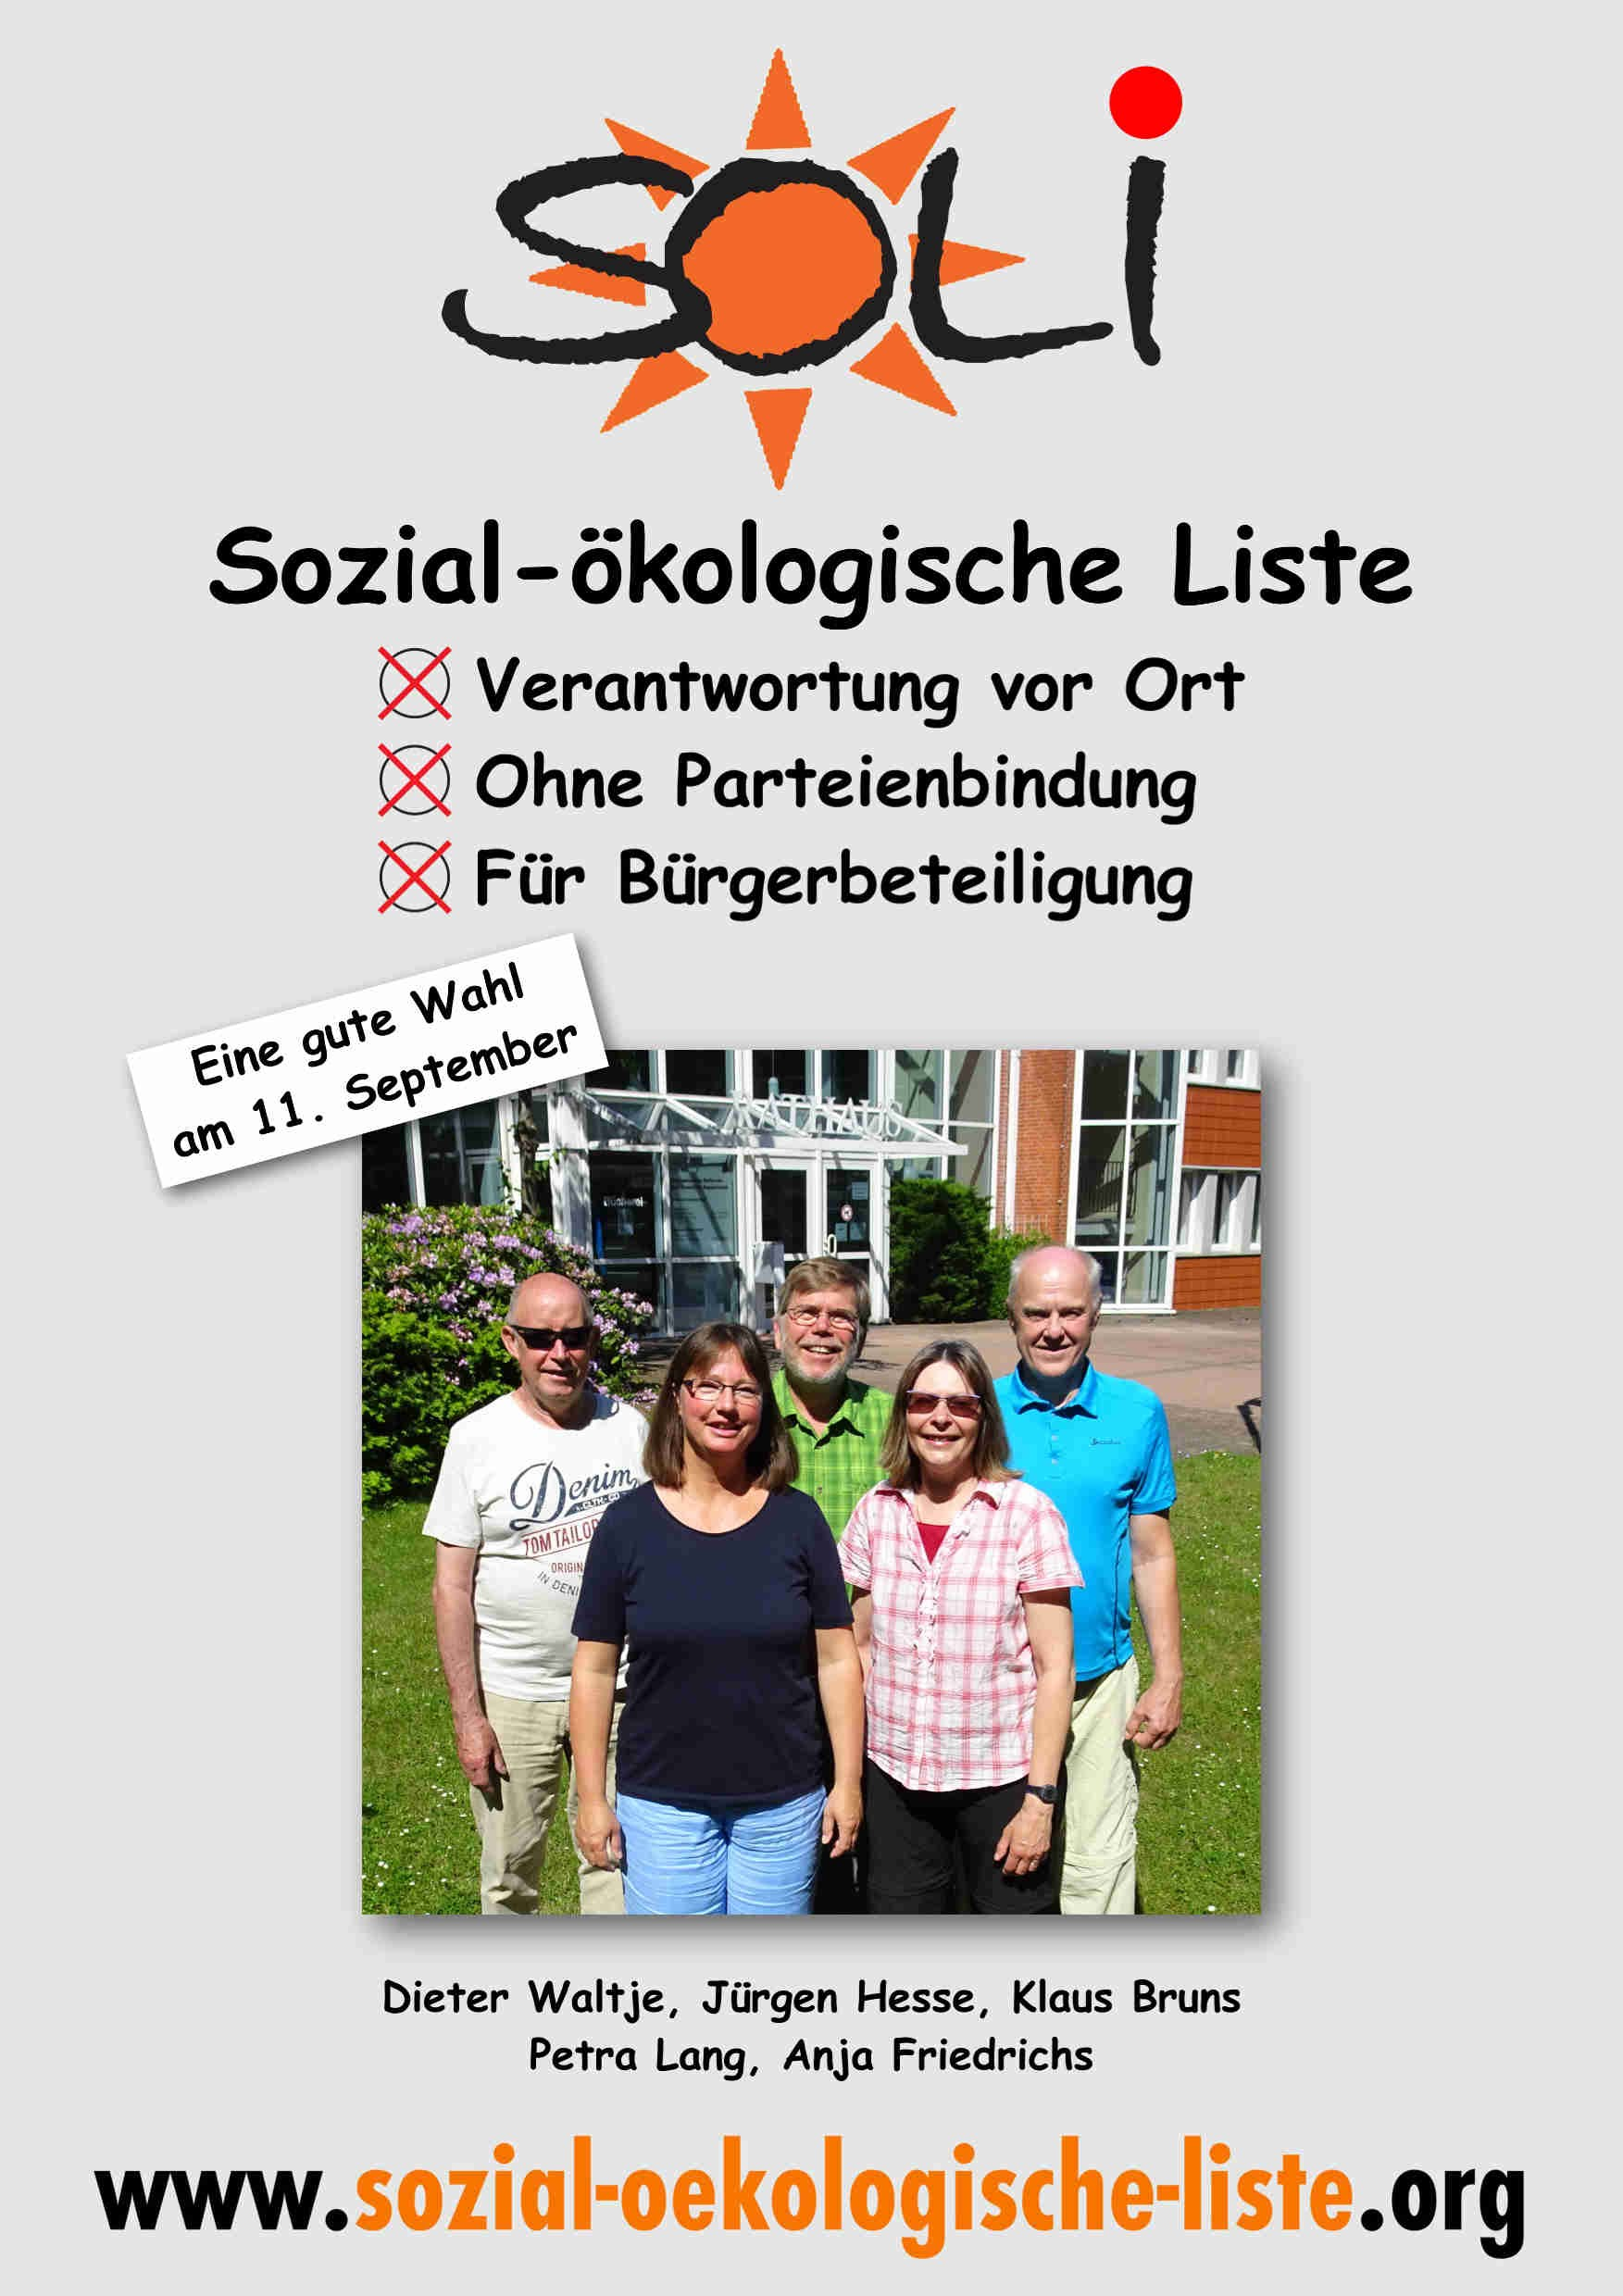 https://sites.google.com/a/sozial-oekologische-liste.org/soli/home/Plakat%20SOLI%20A5%201.3%20geringe%20Qualita%CC%88t.jpg?attredirects=0